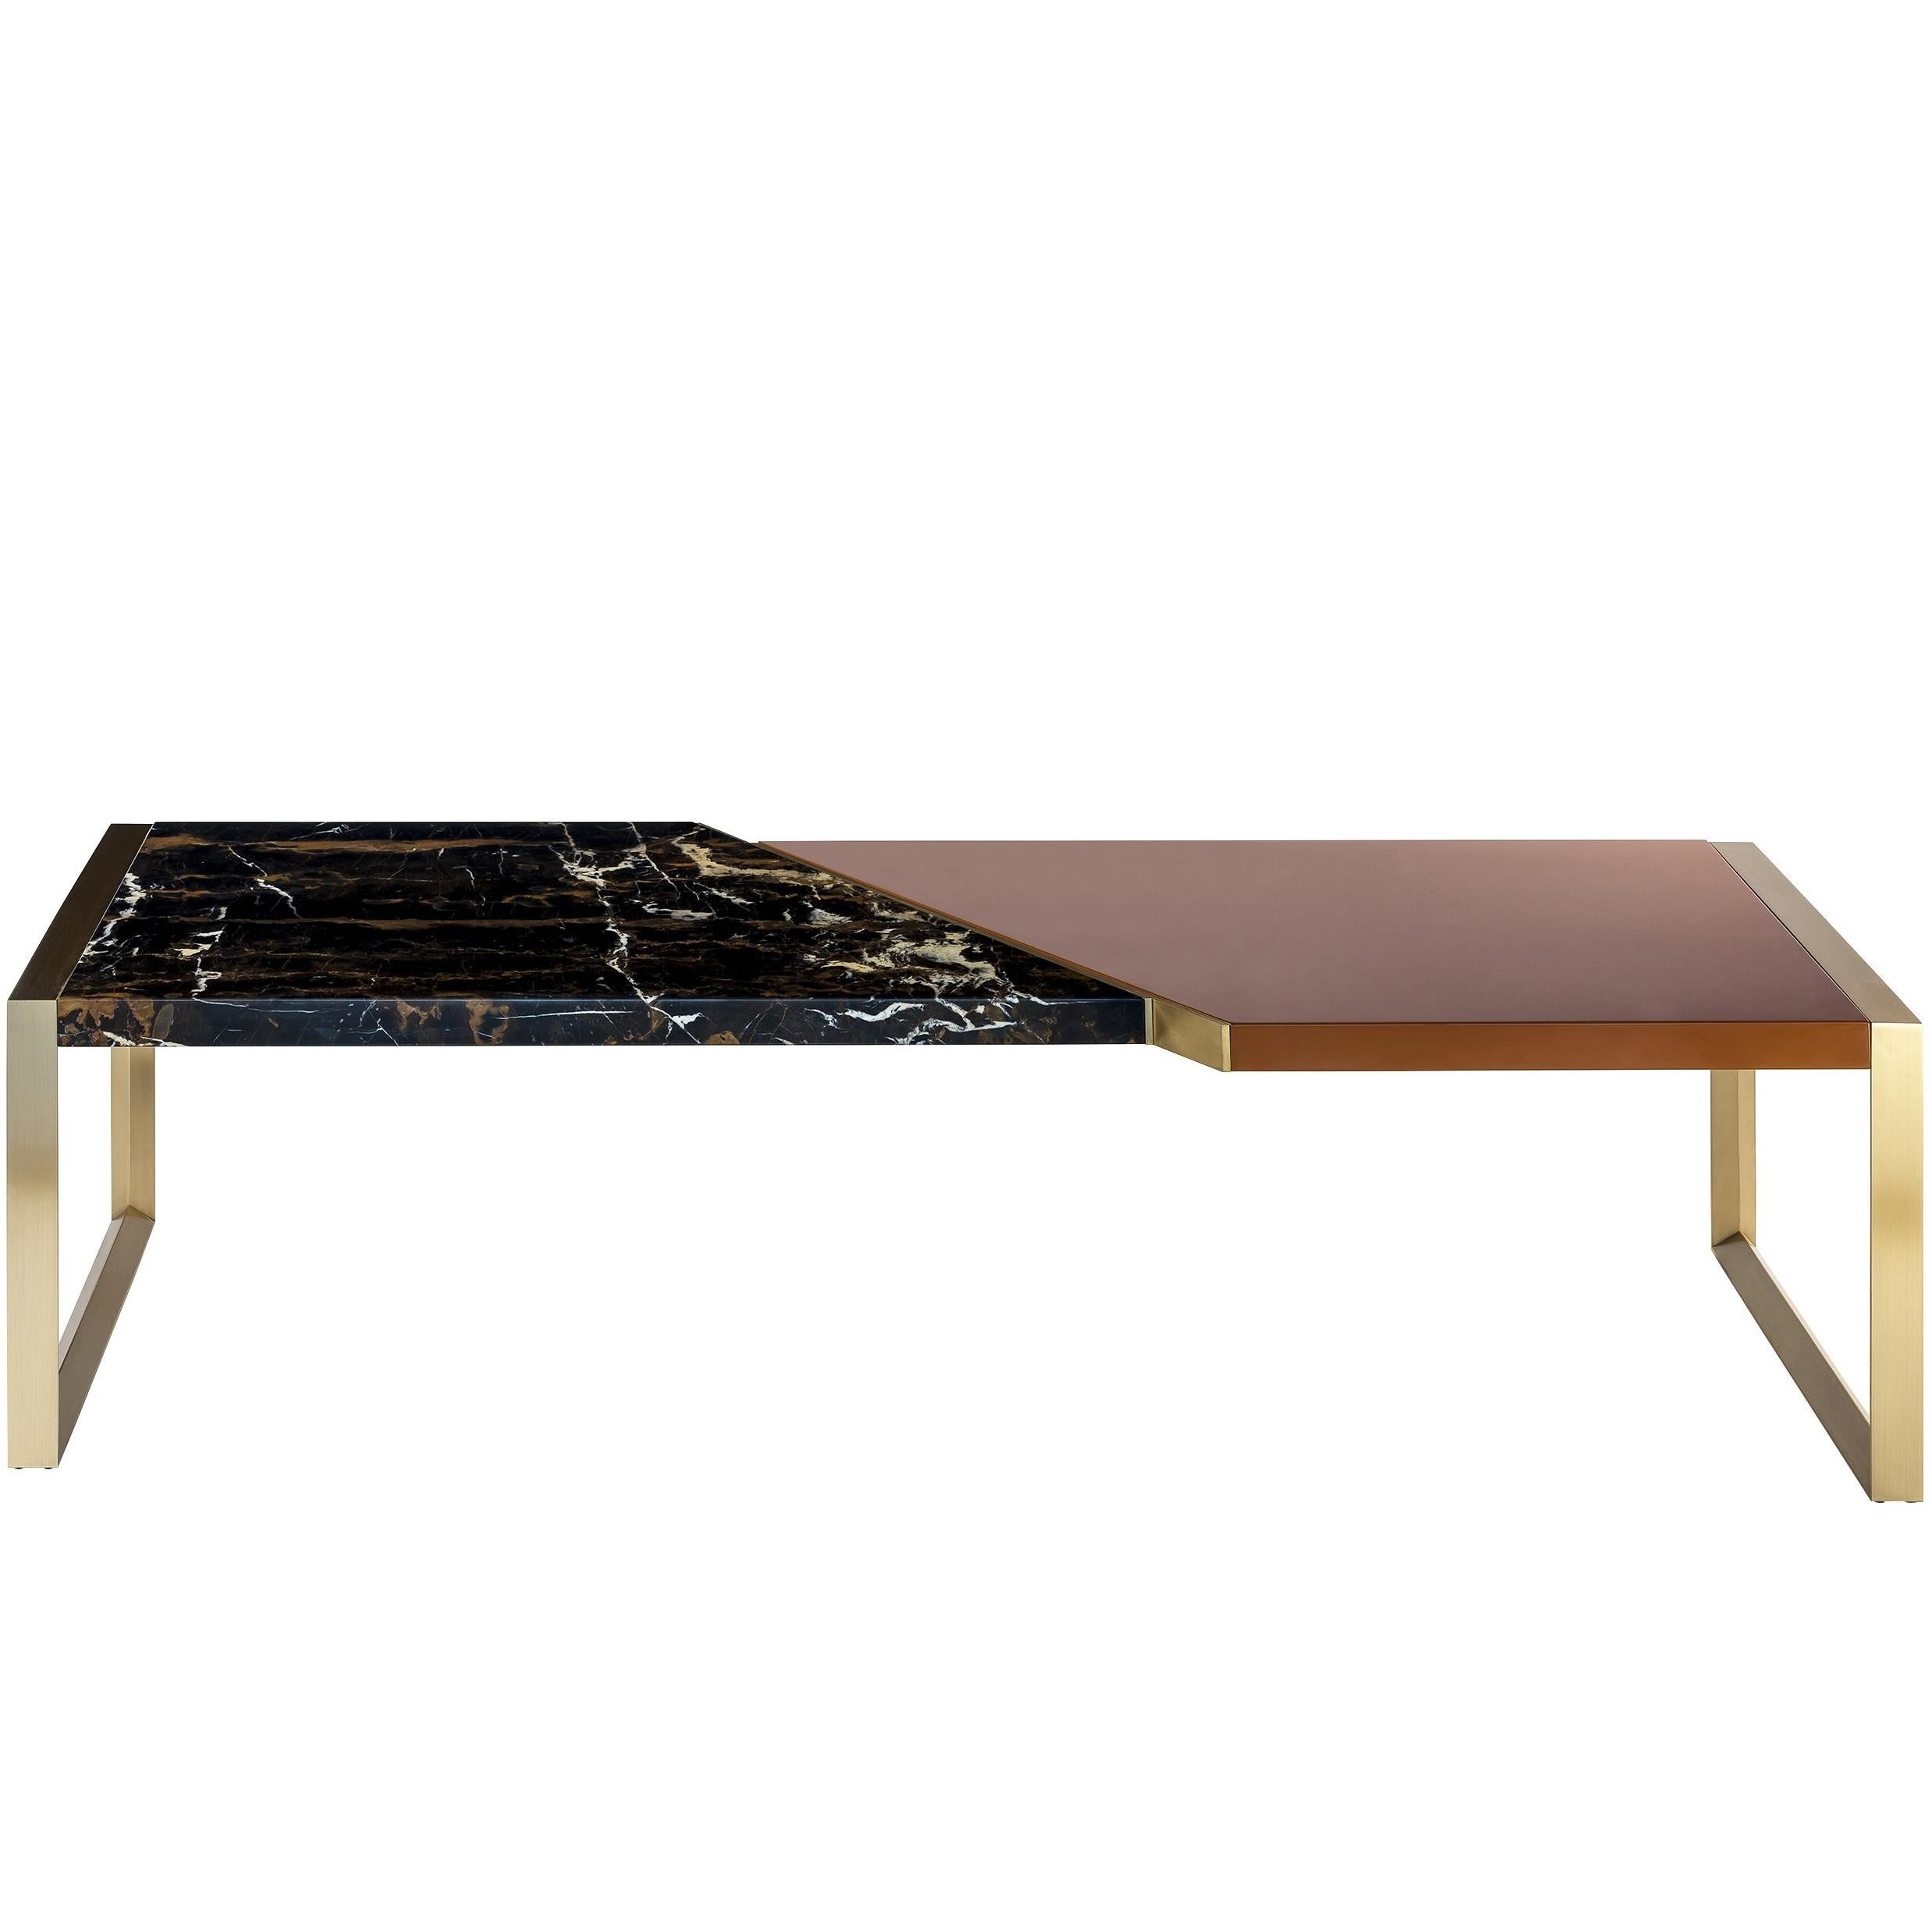 Trapeze Coffee Table with Lacquered Wood, Black and Gold Marble, Brass